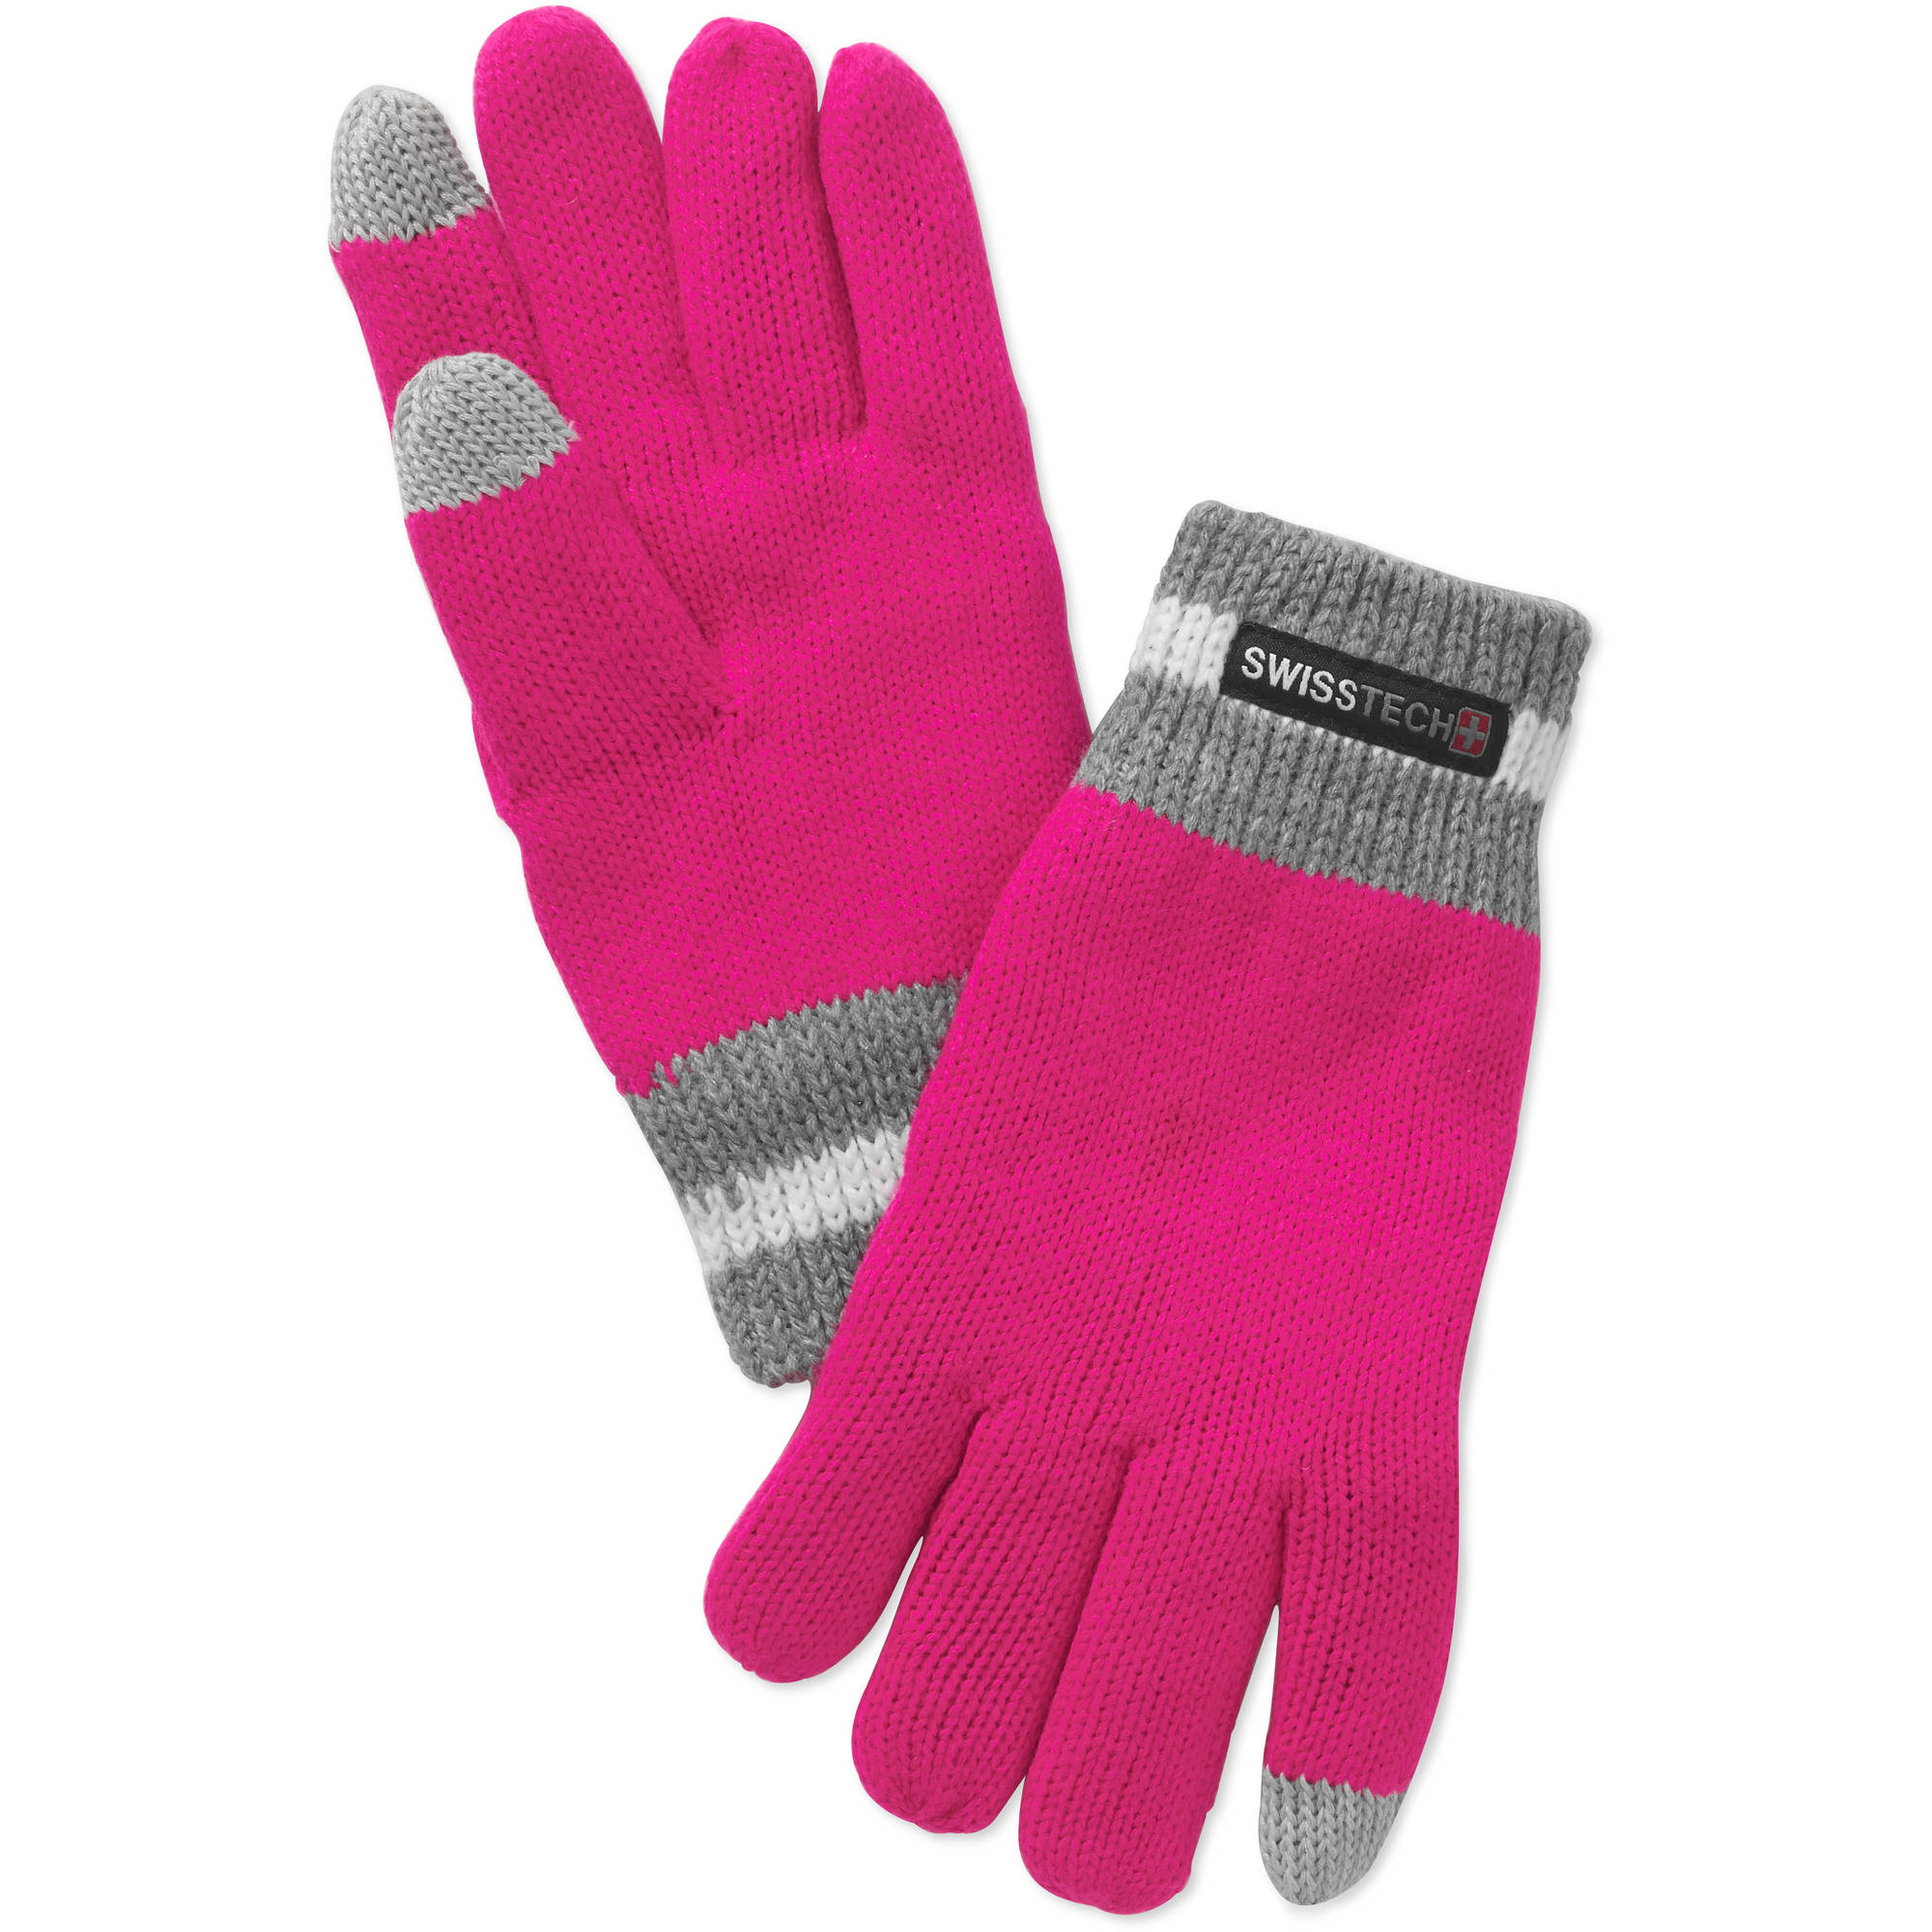 Swiss Tech Girls' Knit Glove With Texting